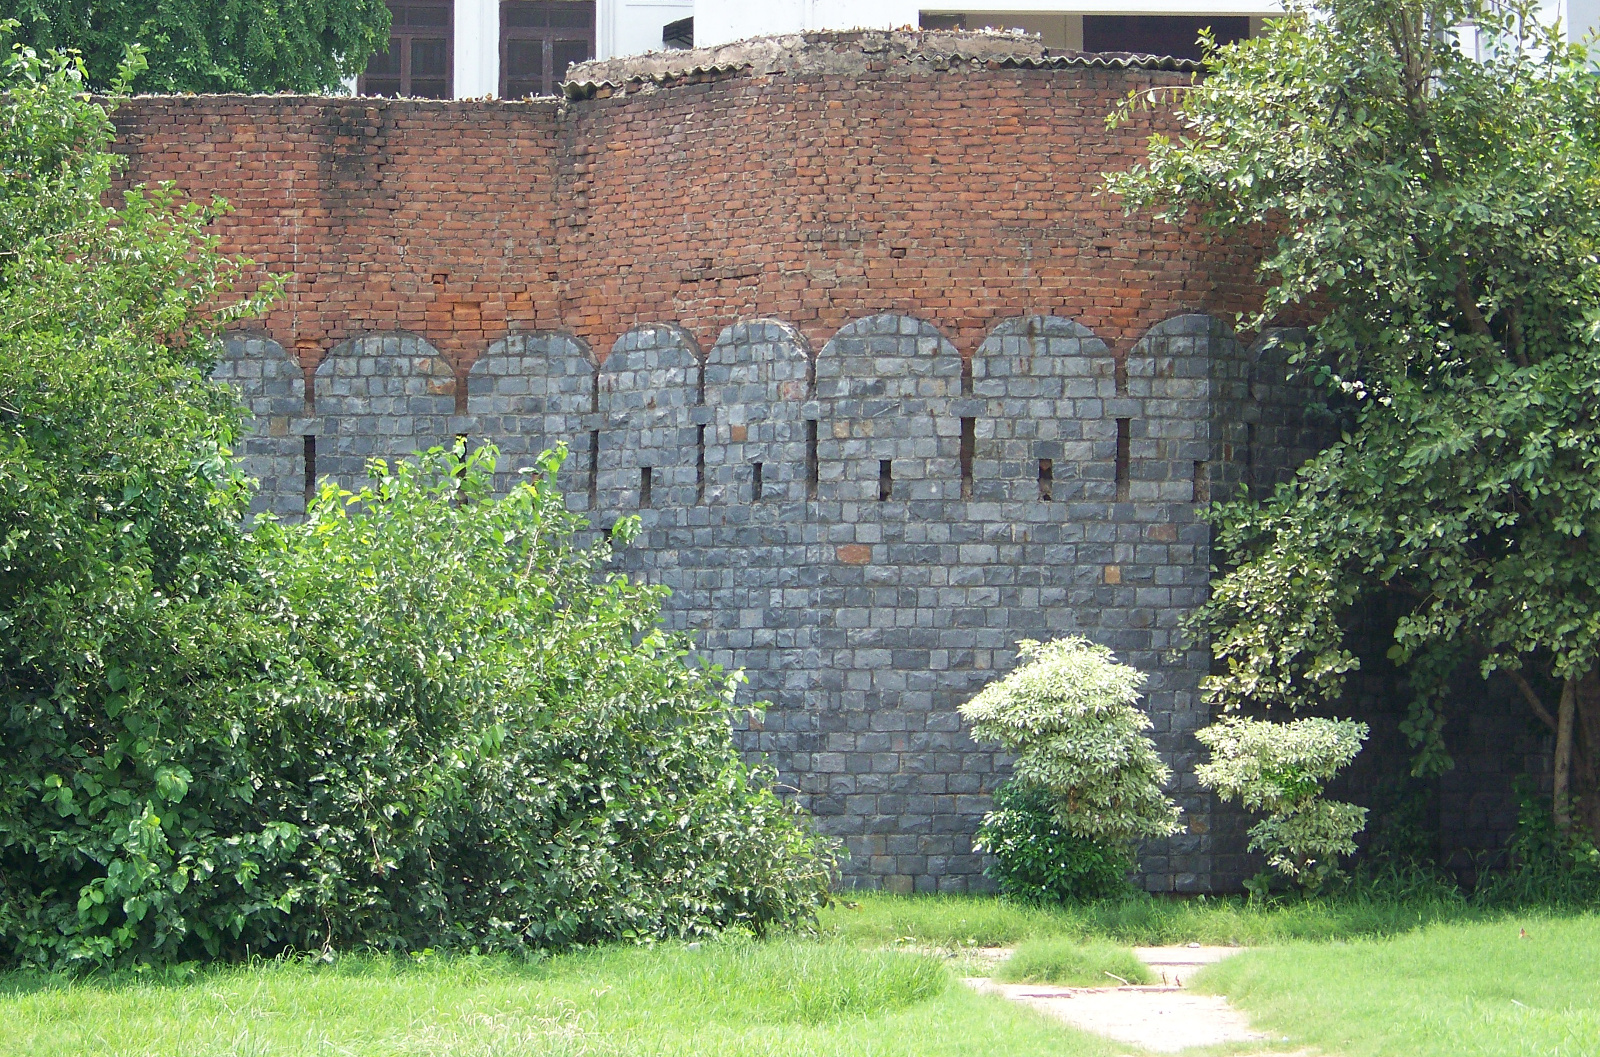 Remaining city wall serving as a retaining wall.